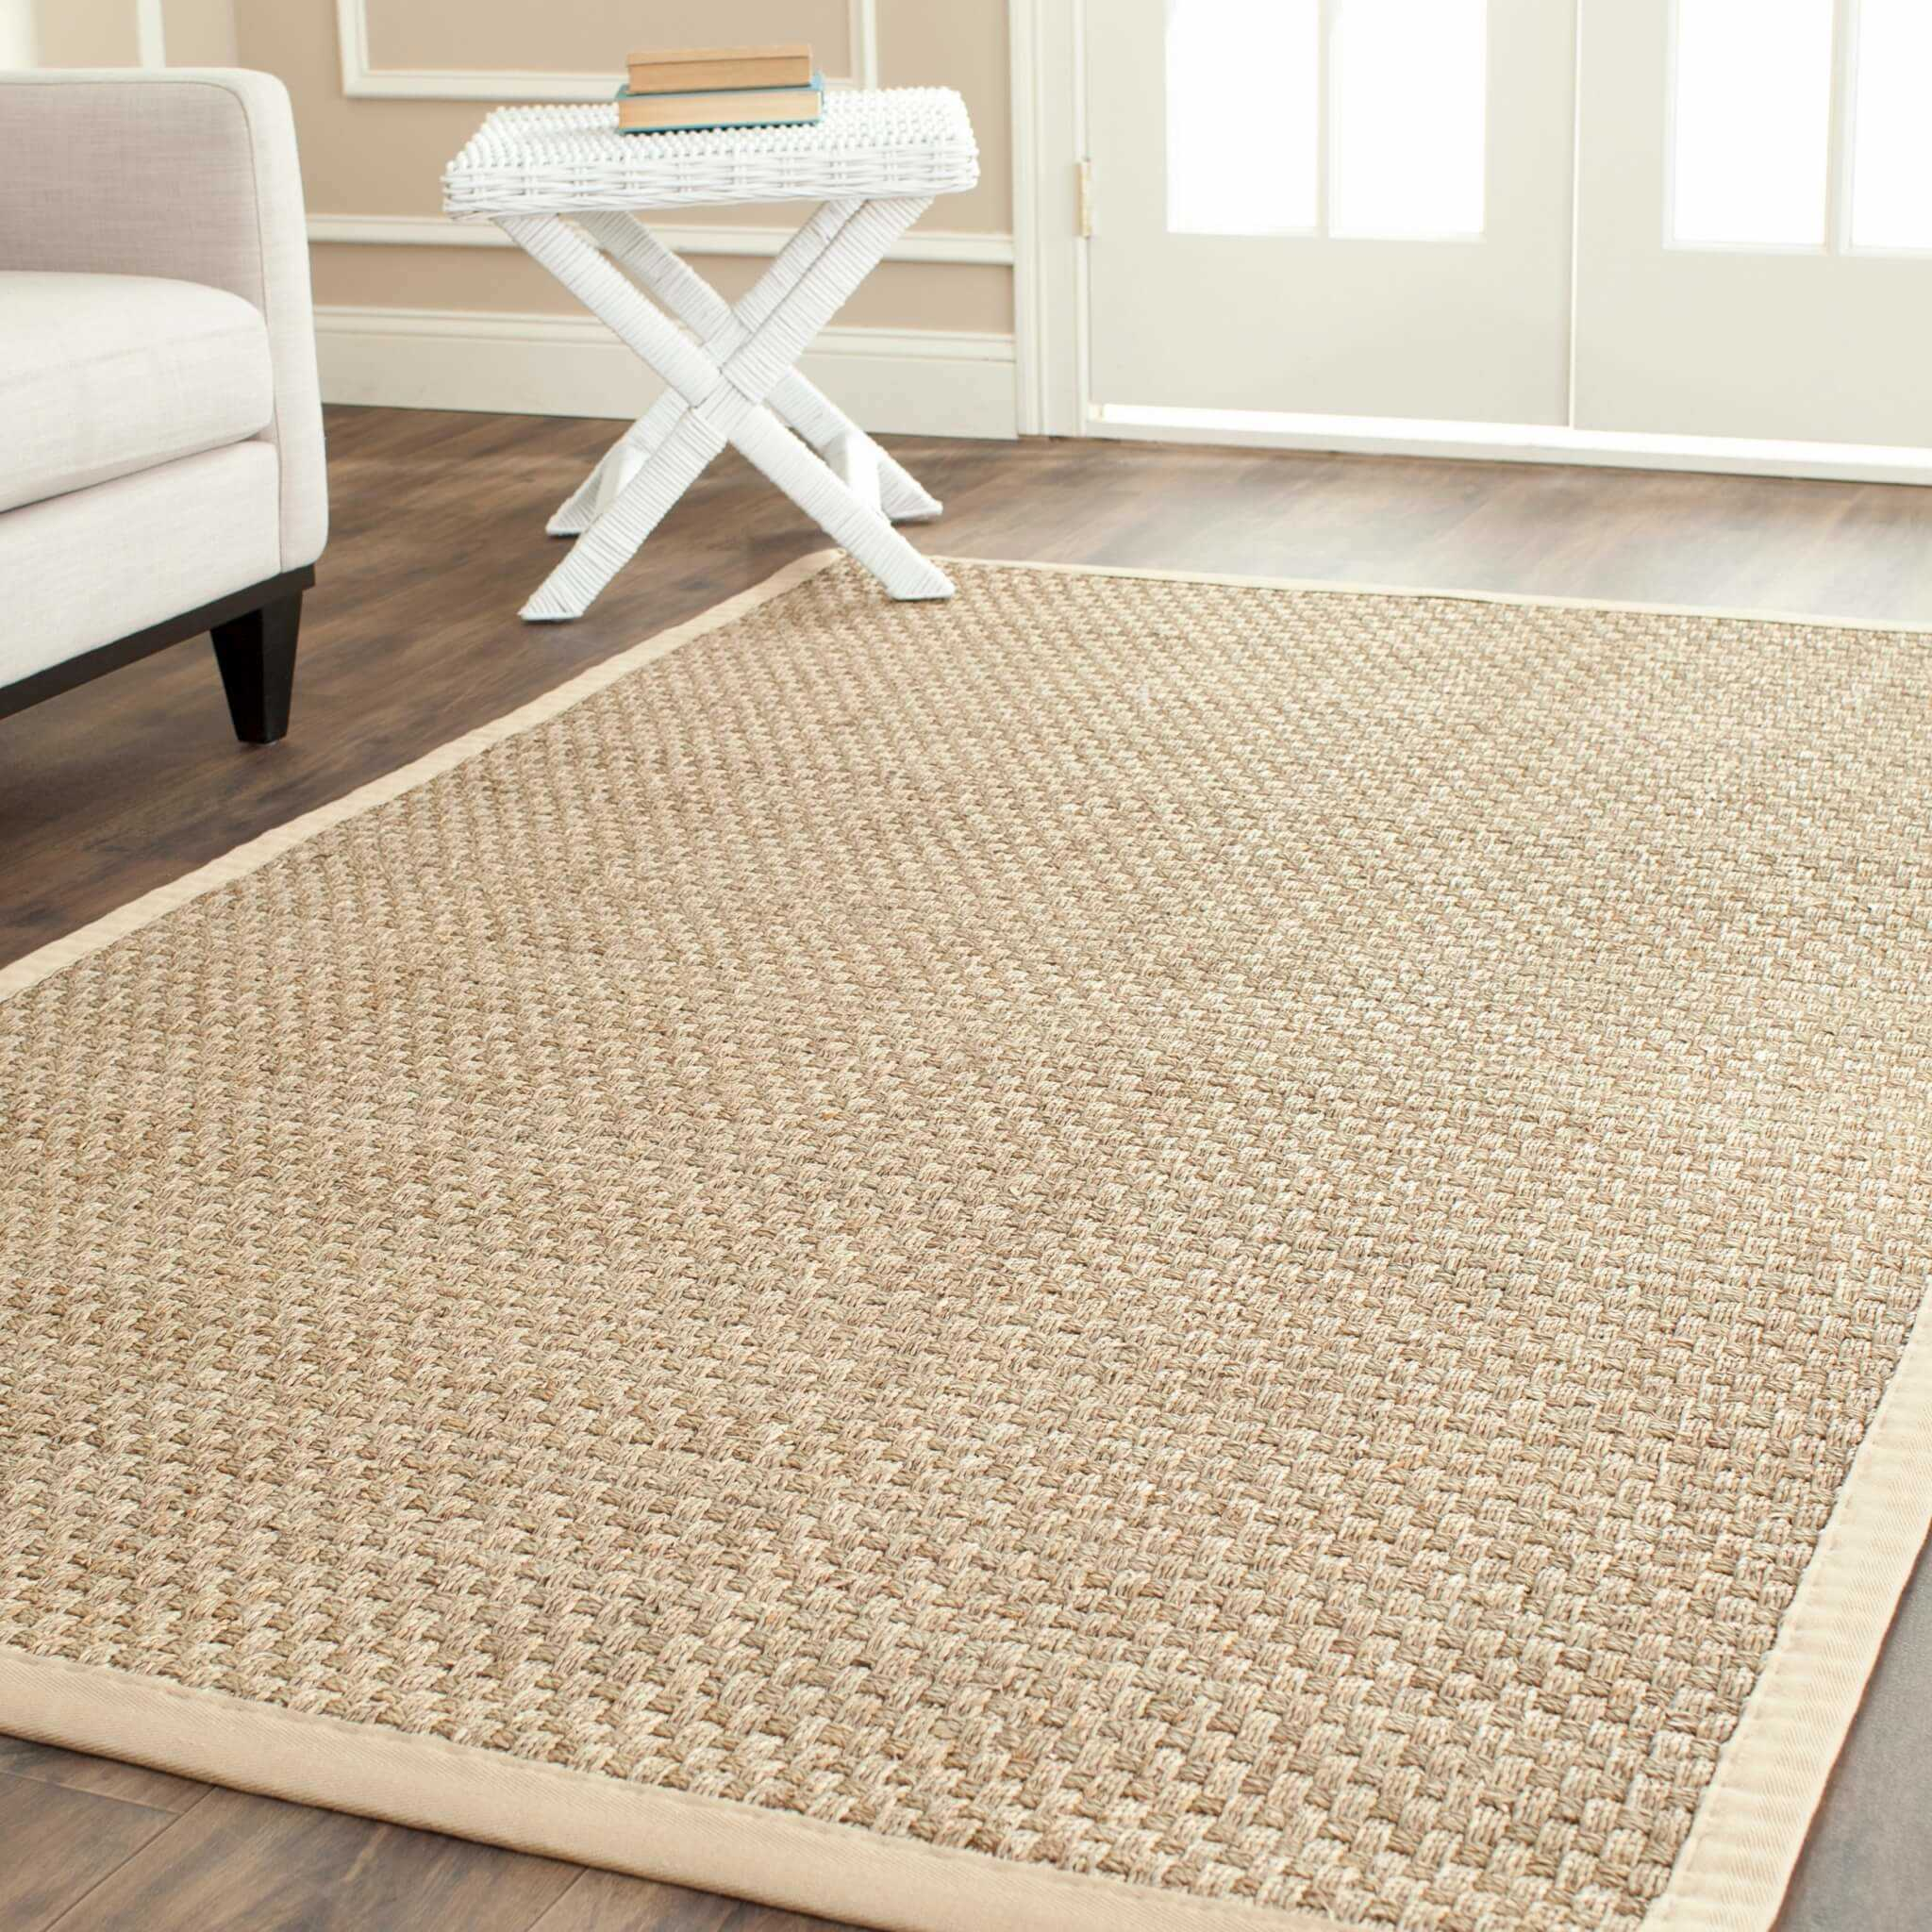 of rug pottery ideas decoration chenille barn target taupe floor backing in round dazzling burlap for rugs pretty design jute flooring painted area abacus